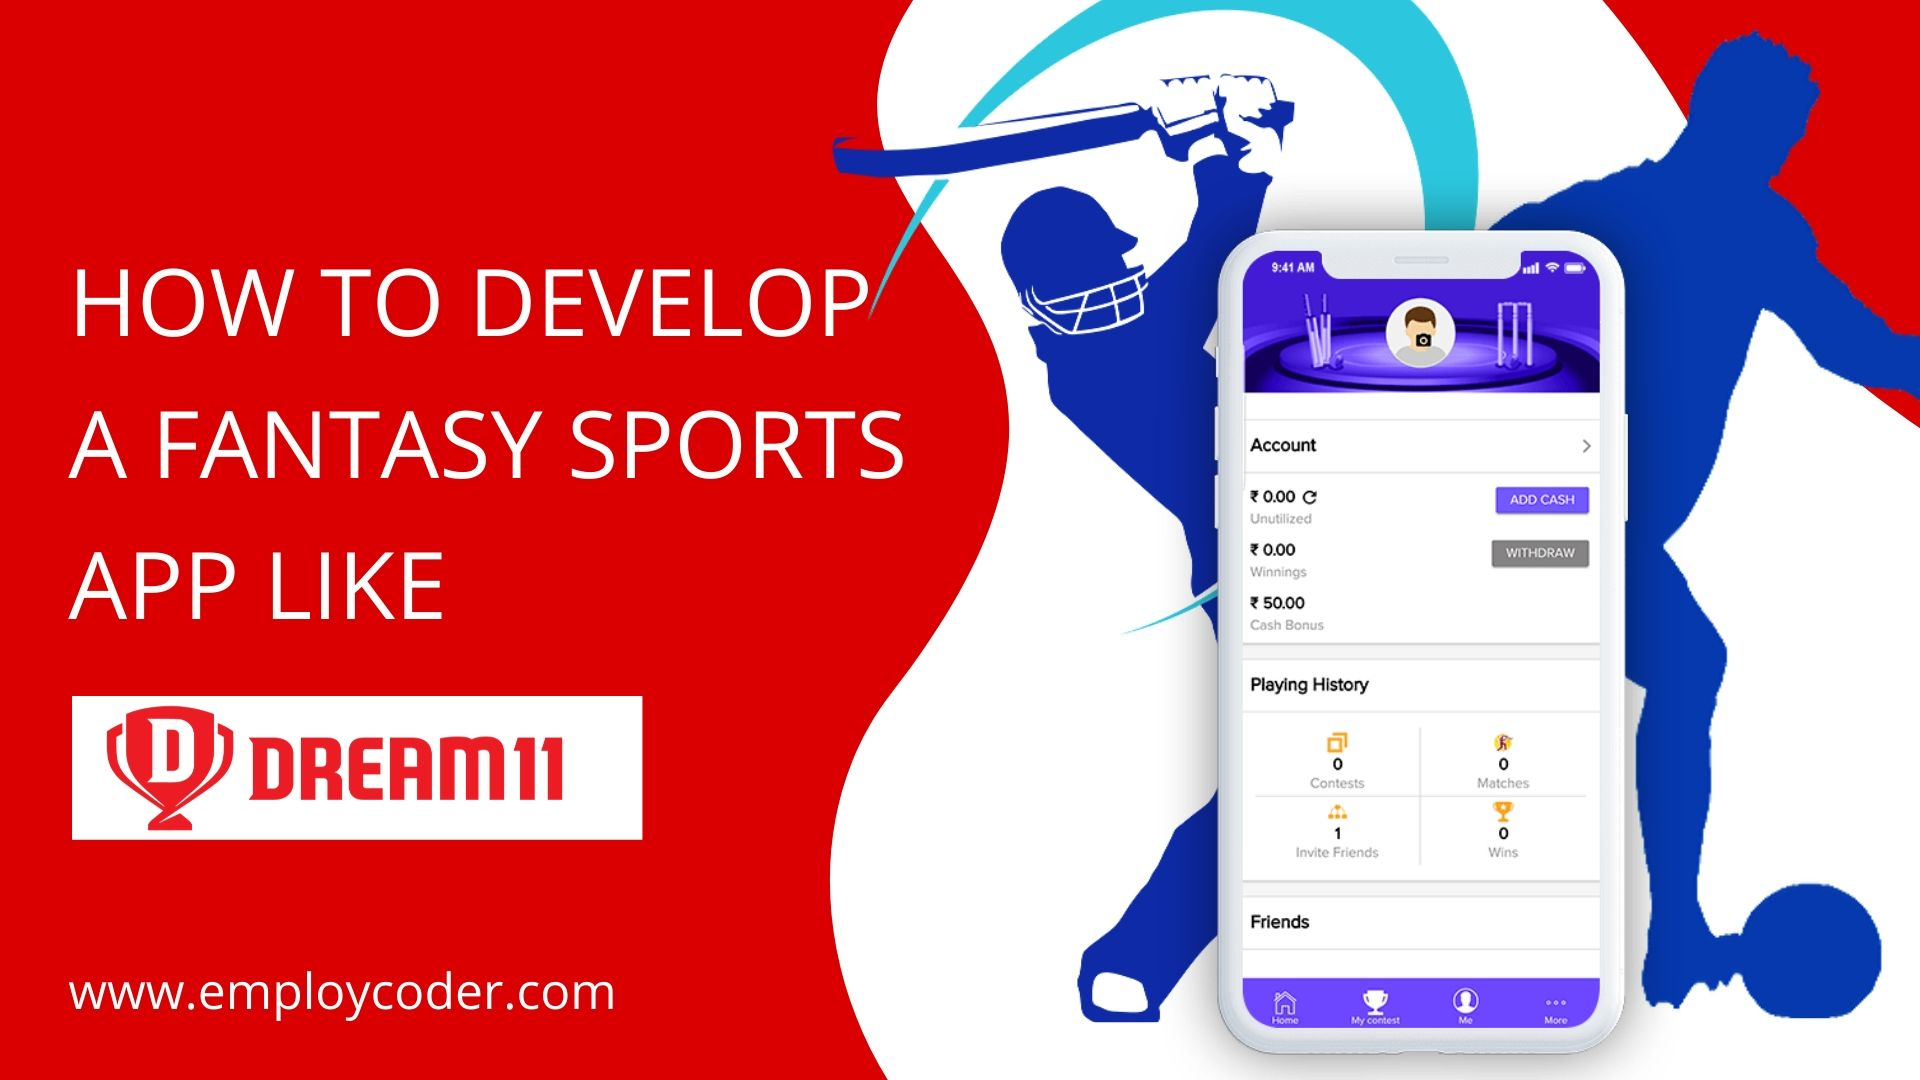 Dream11 Clone App - Start your own Fantasy Sports App